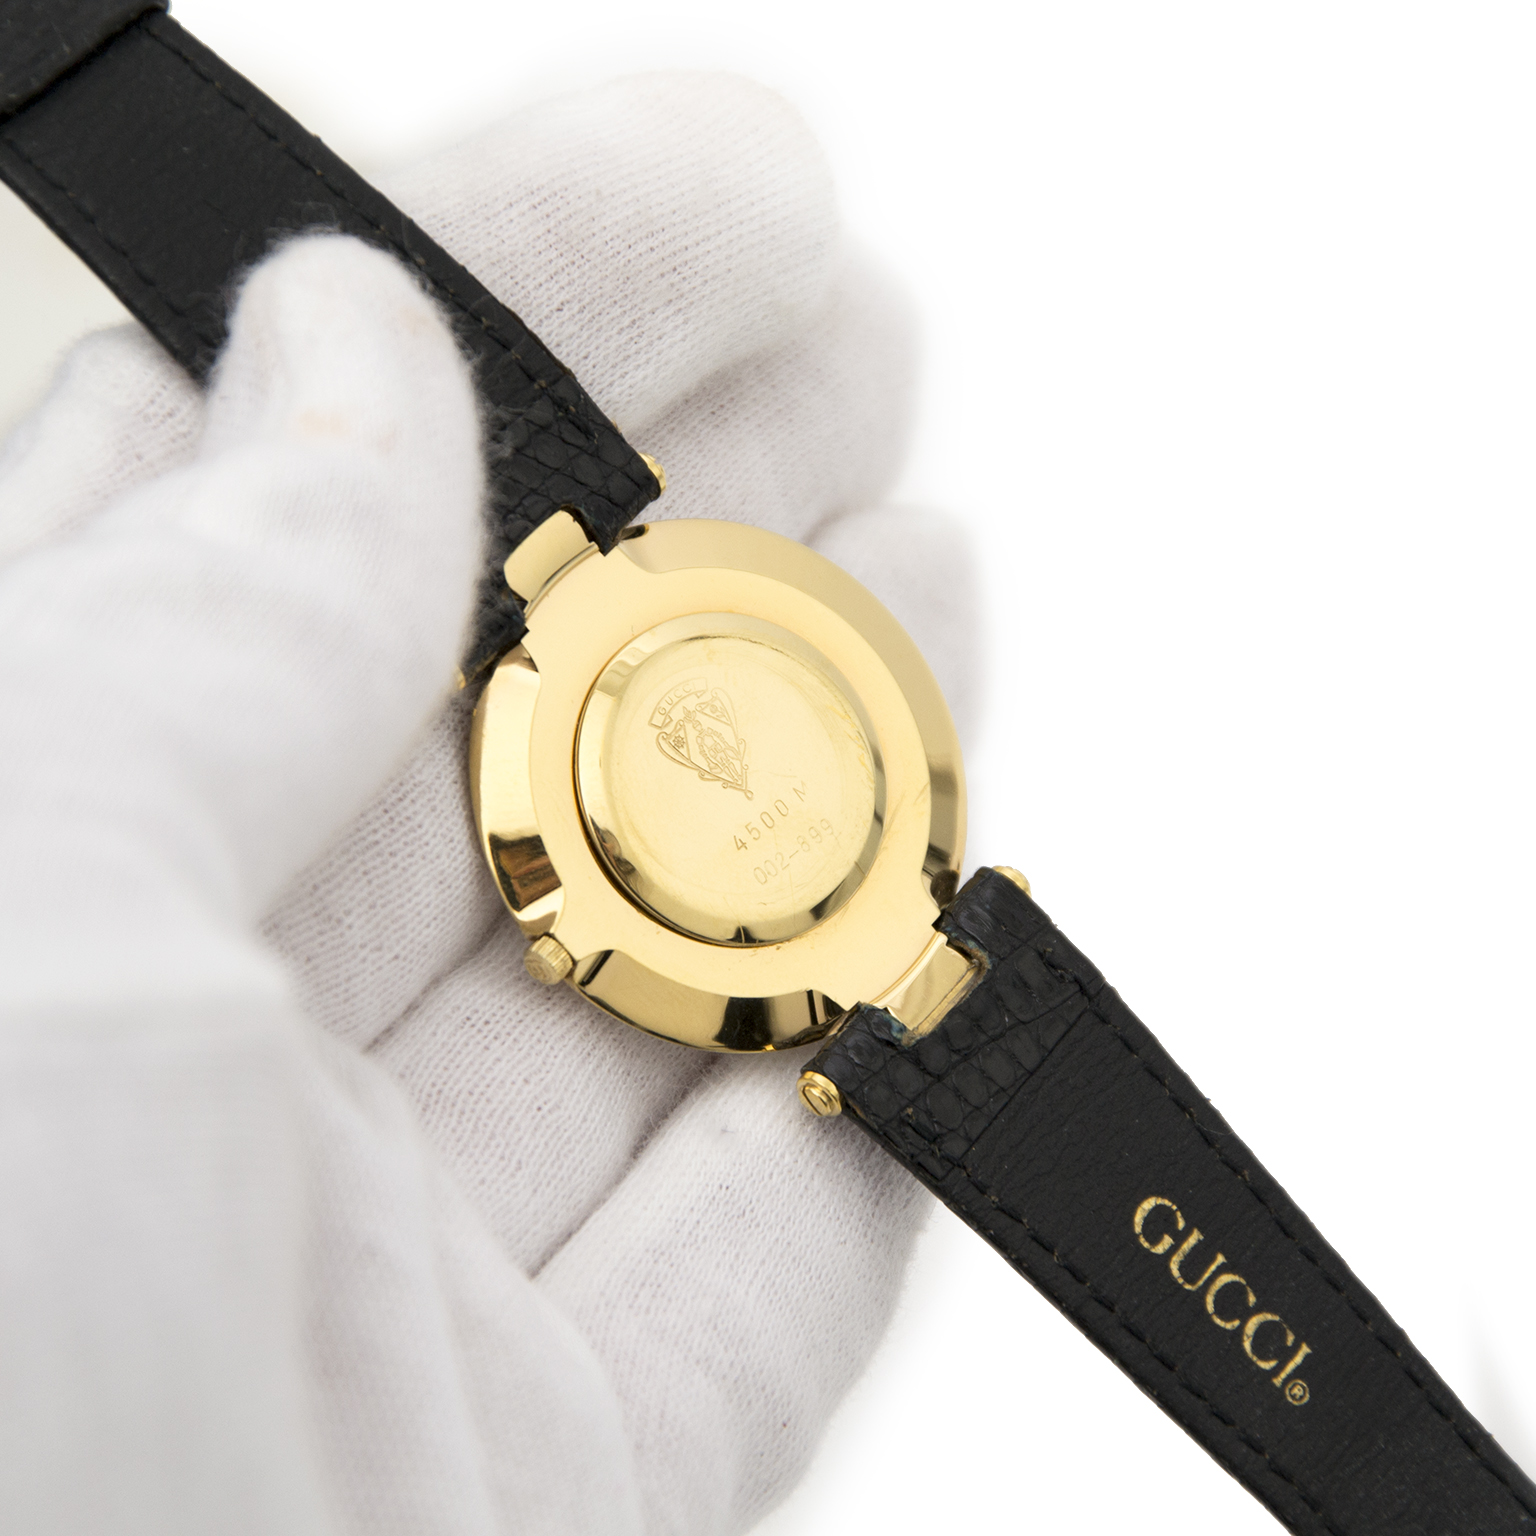 576d4ecfa ... Buy now safe and secure a real gold plated Gucci watch on www.labellov.